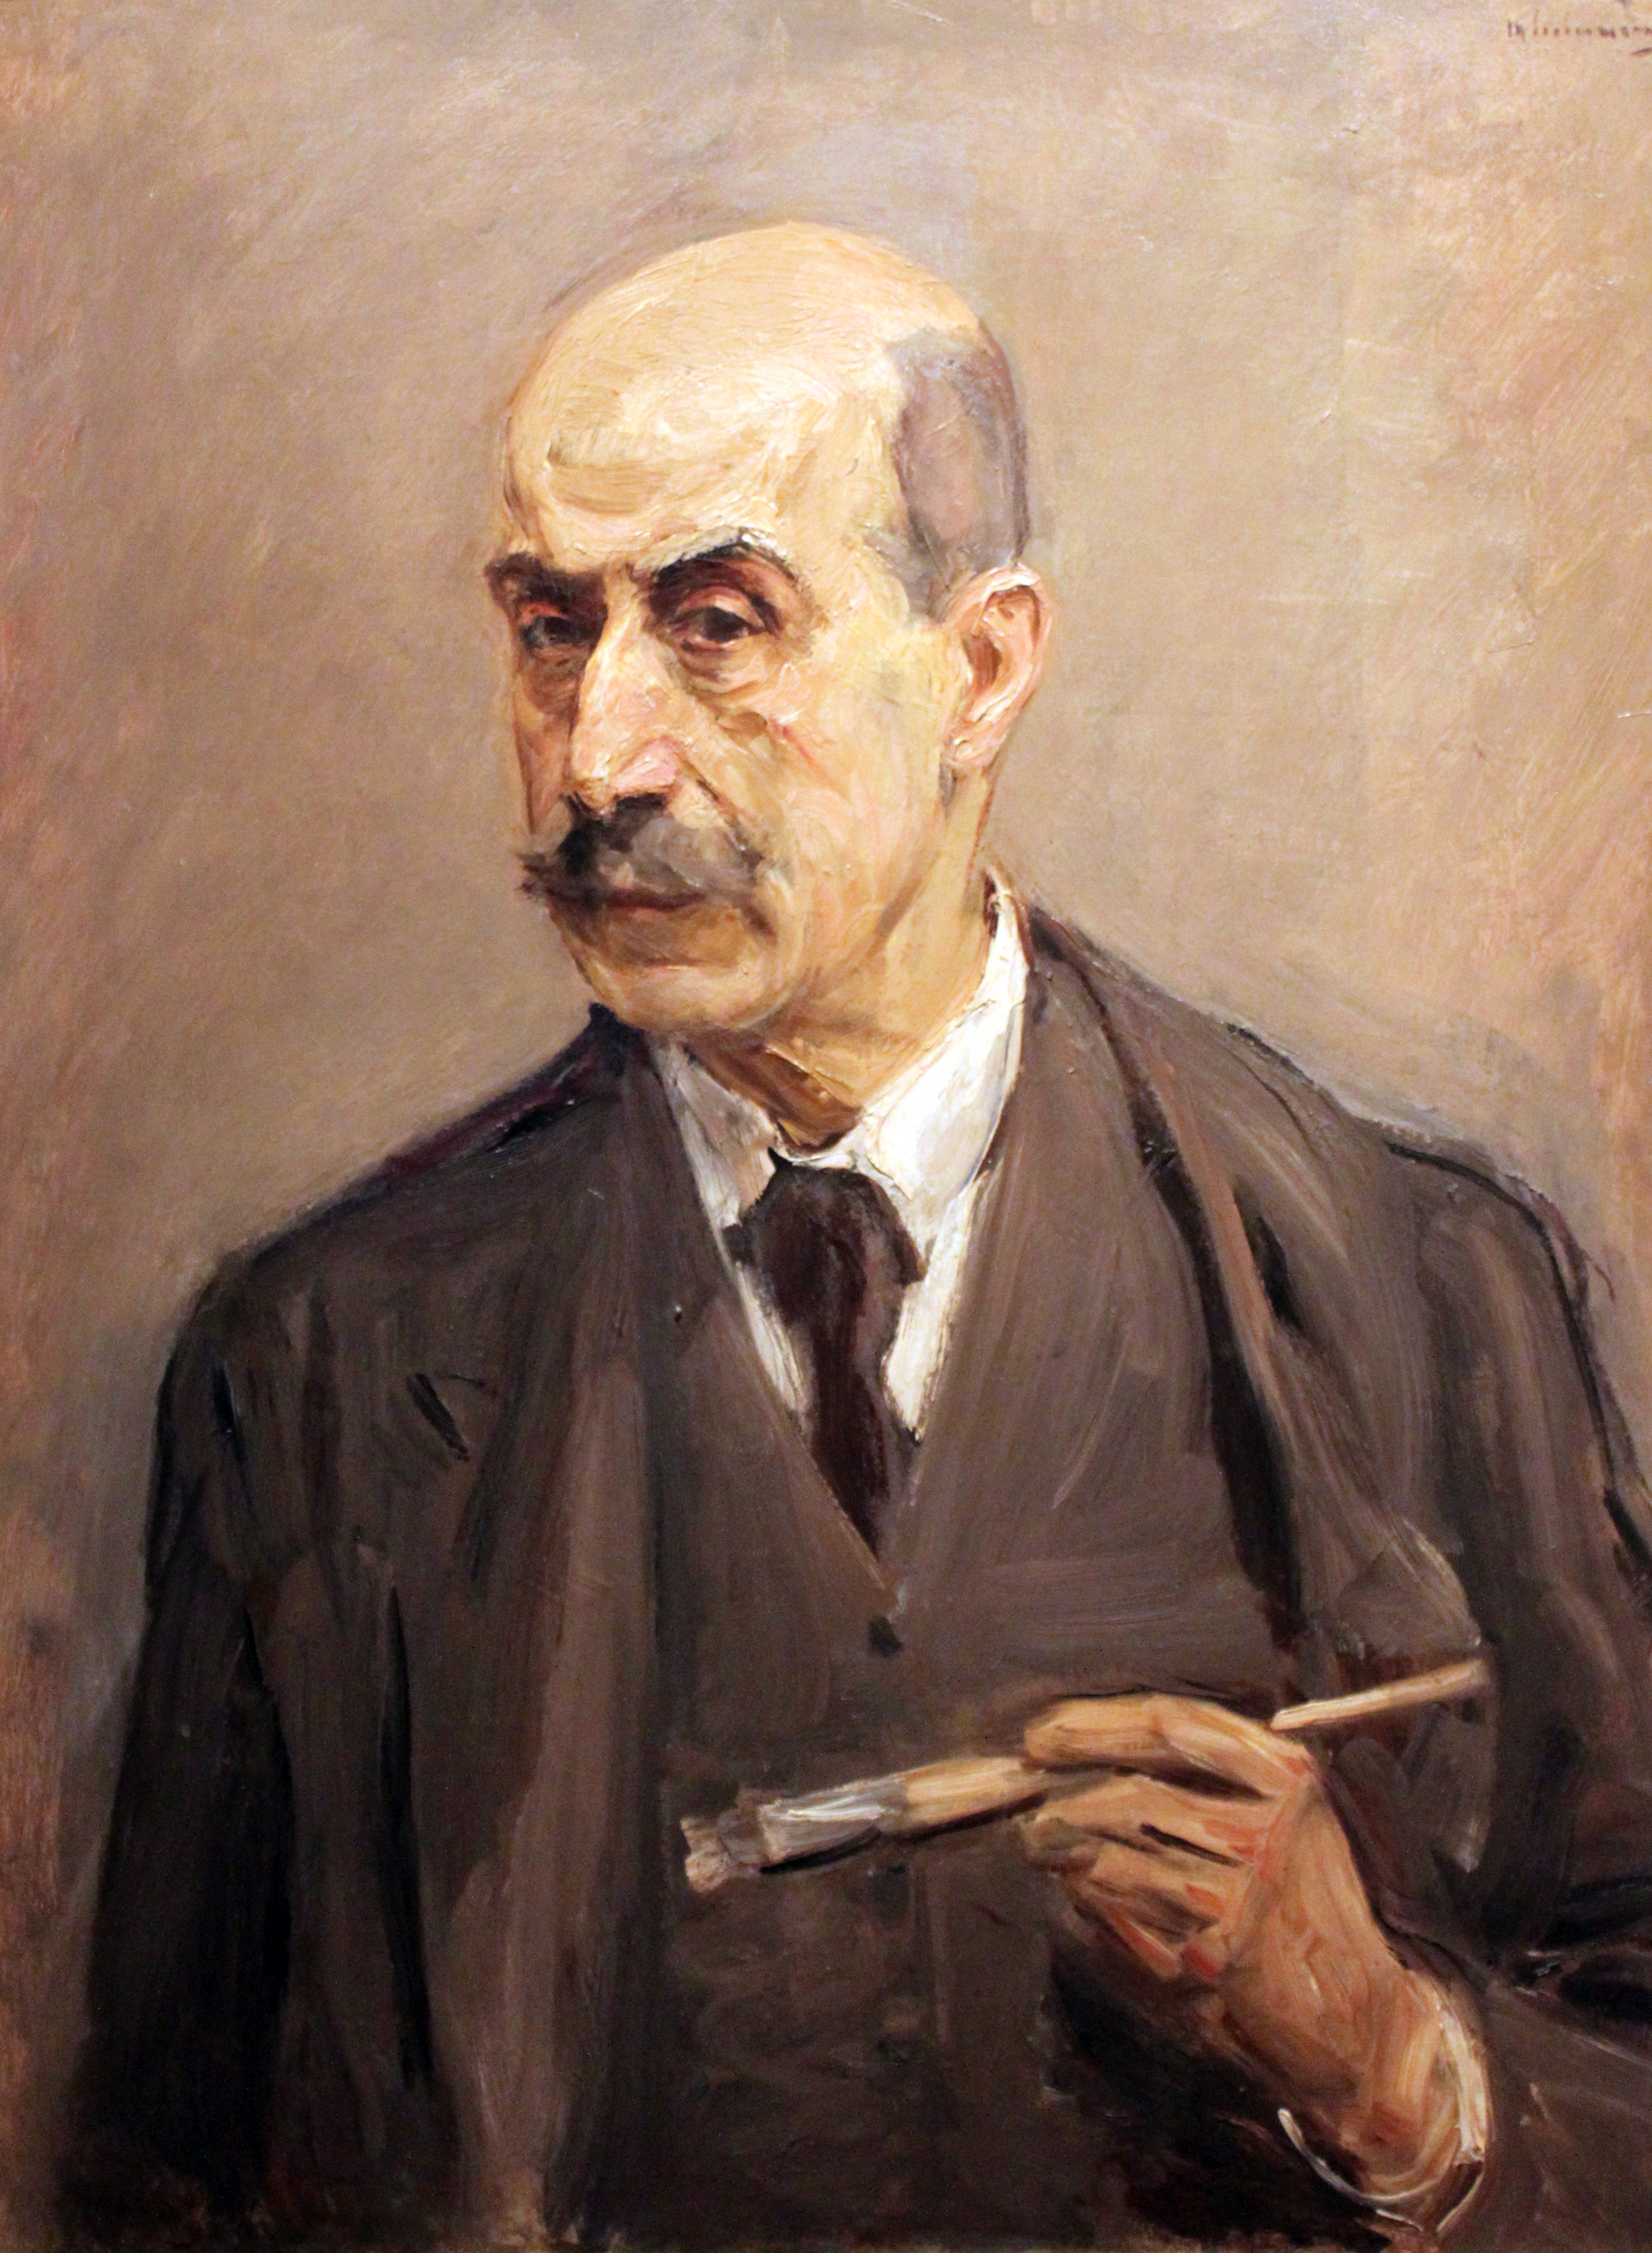 Image of Max Liebermann from Wikidata